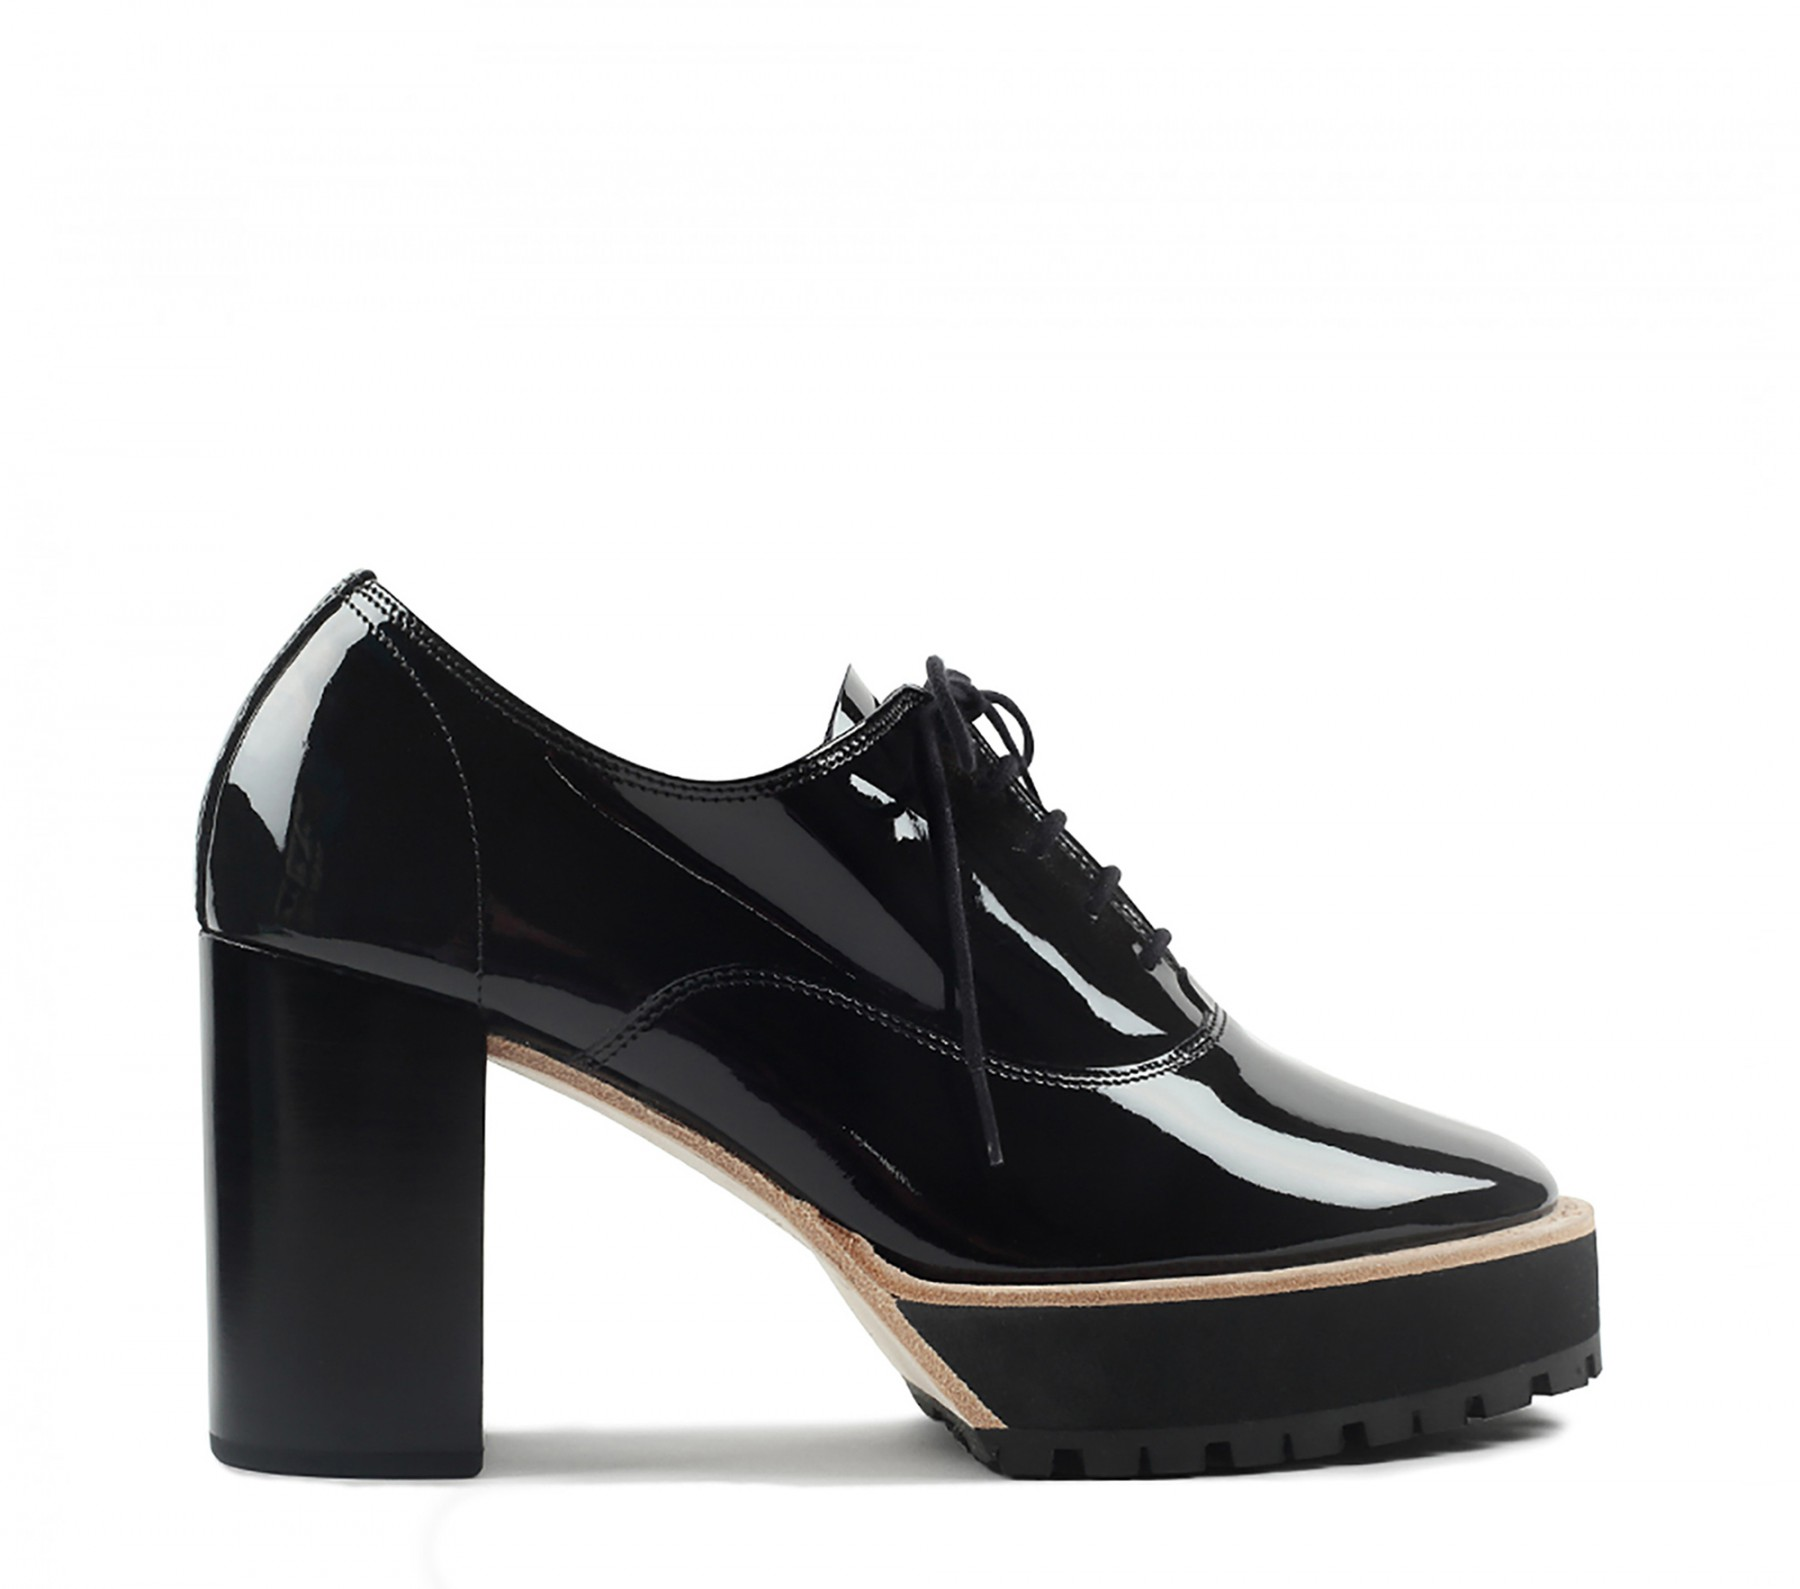 Repetto Ivan heeled Oxfords LUXZdrM